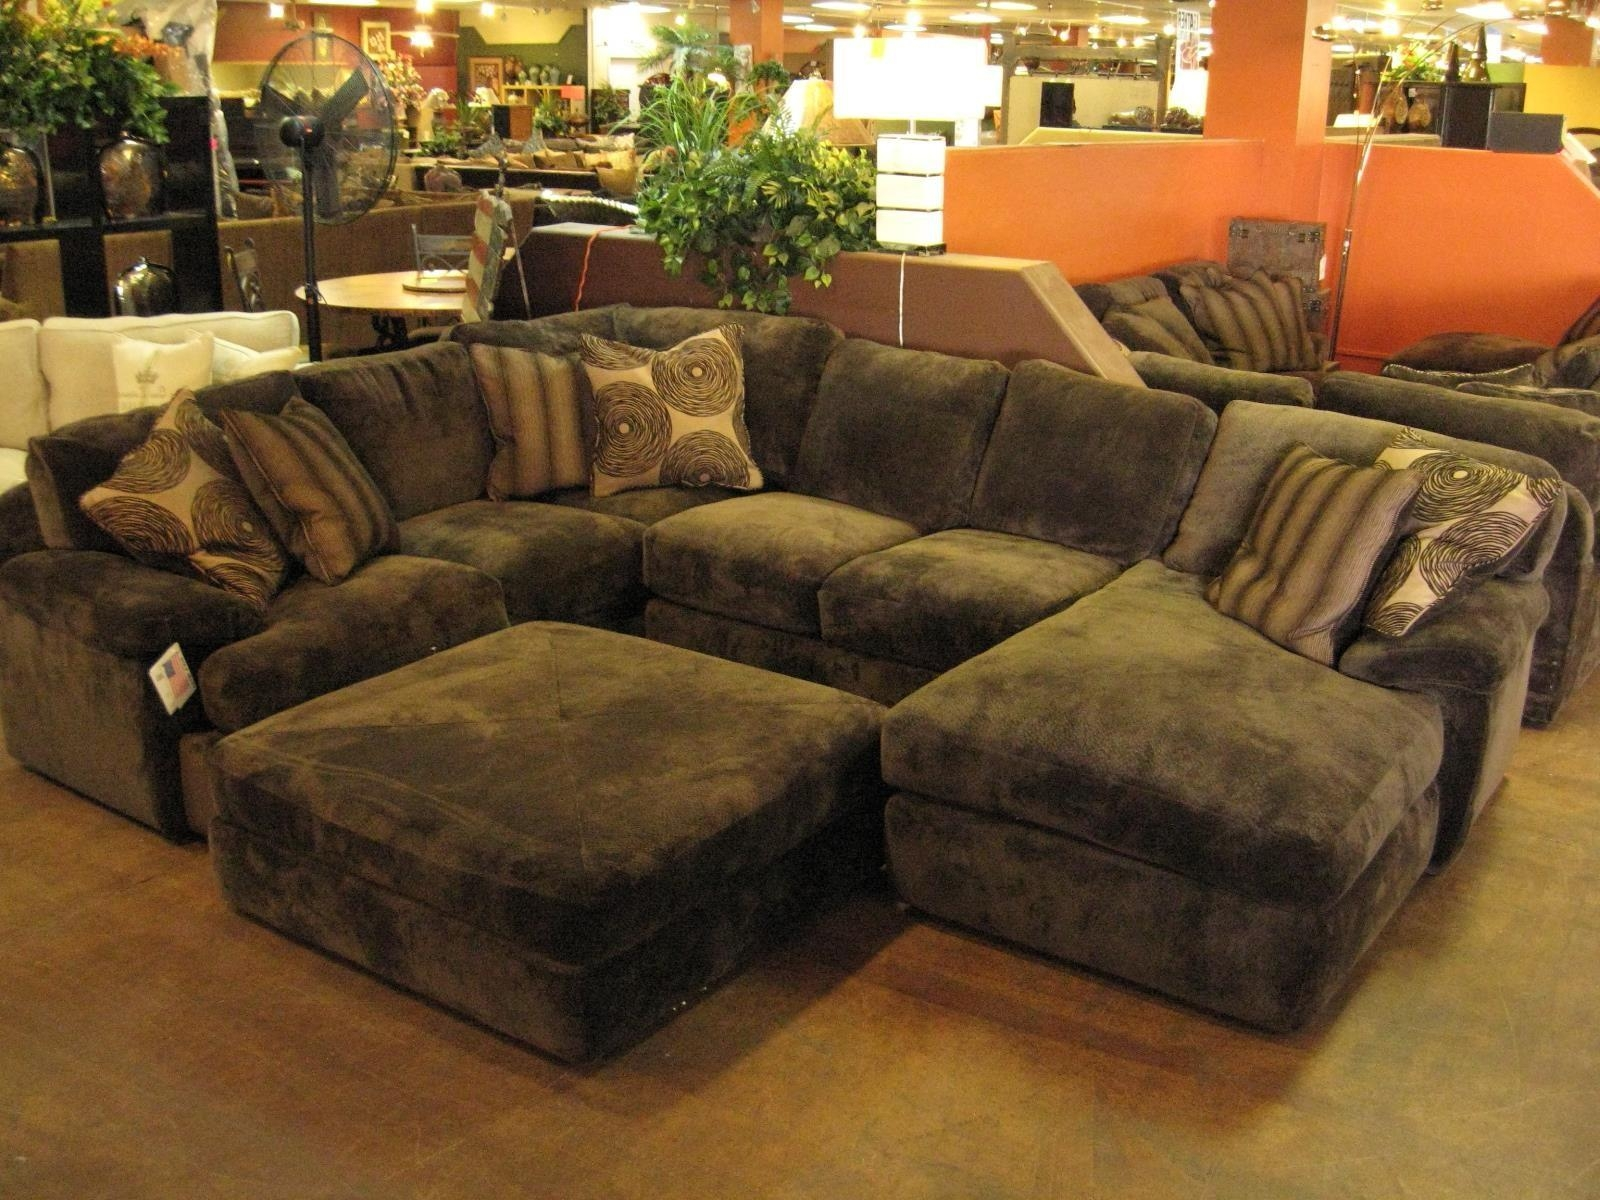 Sofas Center : Sectional Sofa With Oversized Ottoman Home Design In Sectional With Large Ottoman (Image 17 of 20)